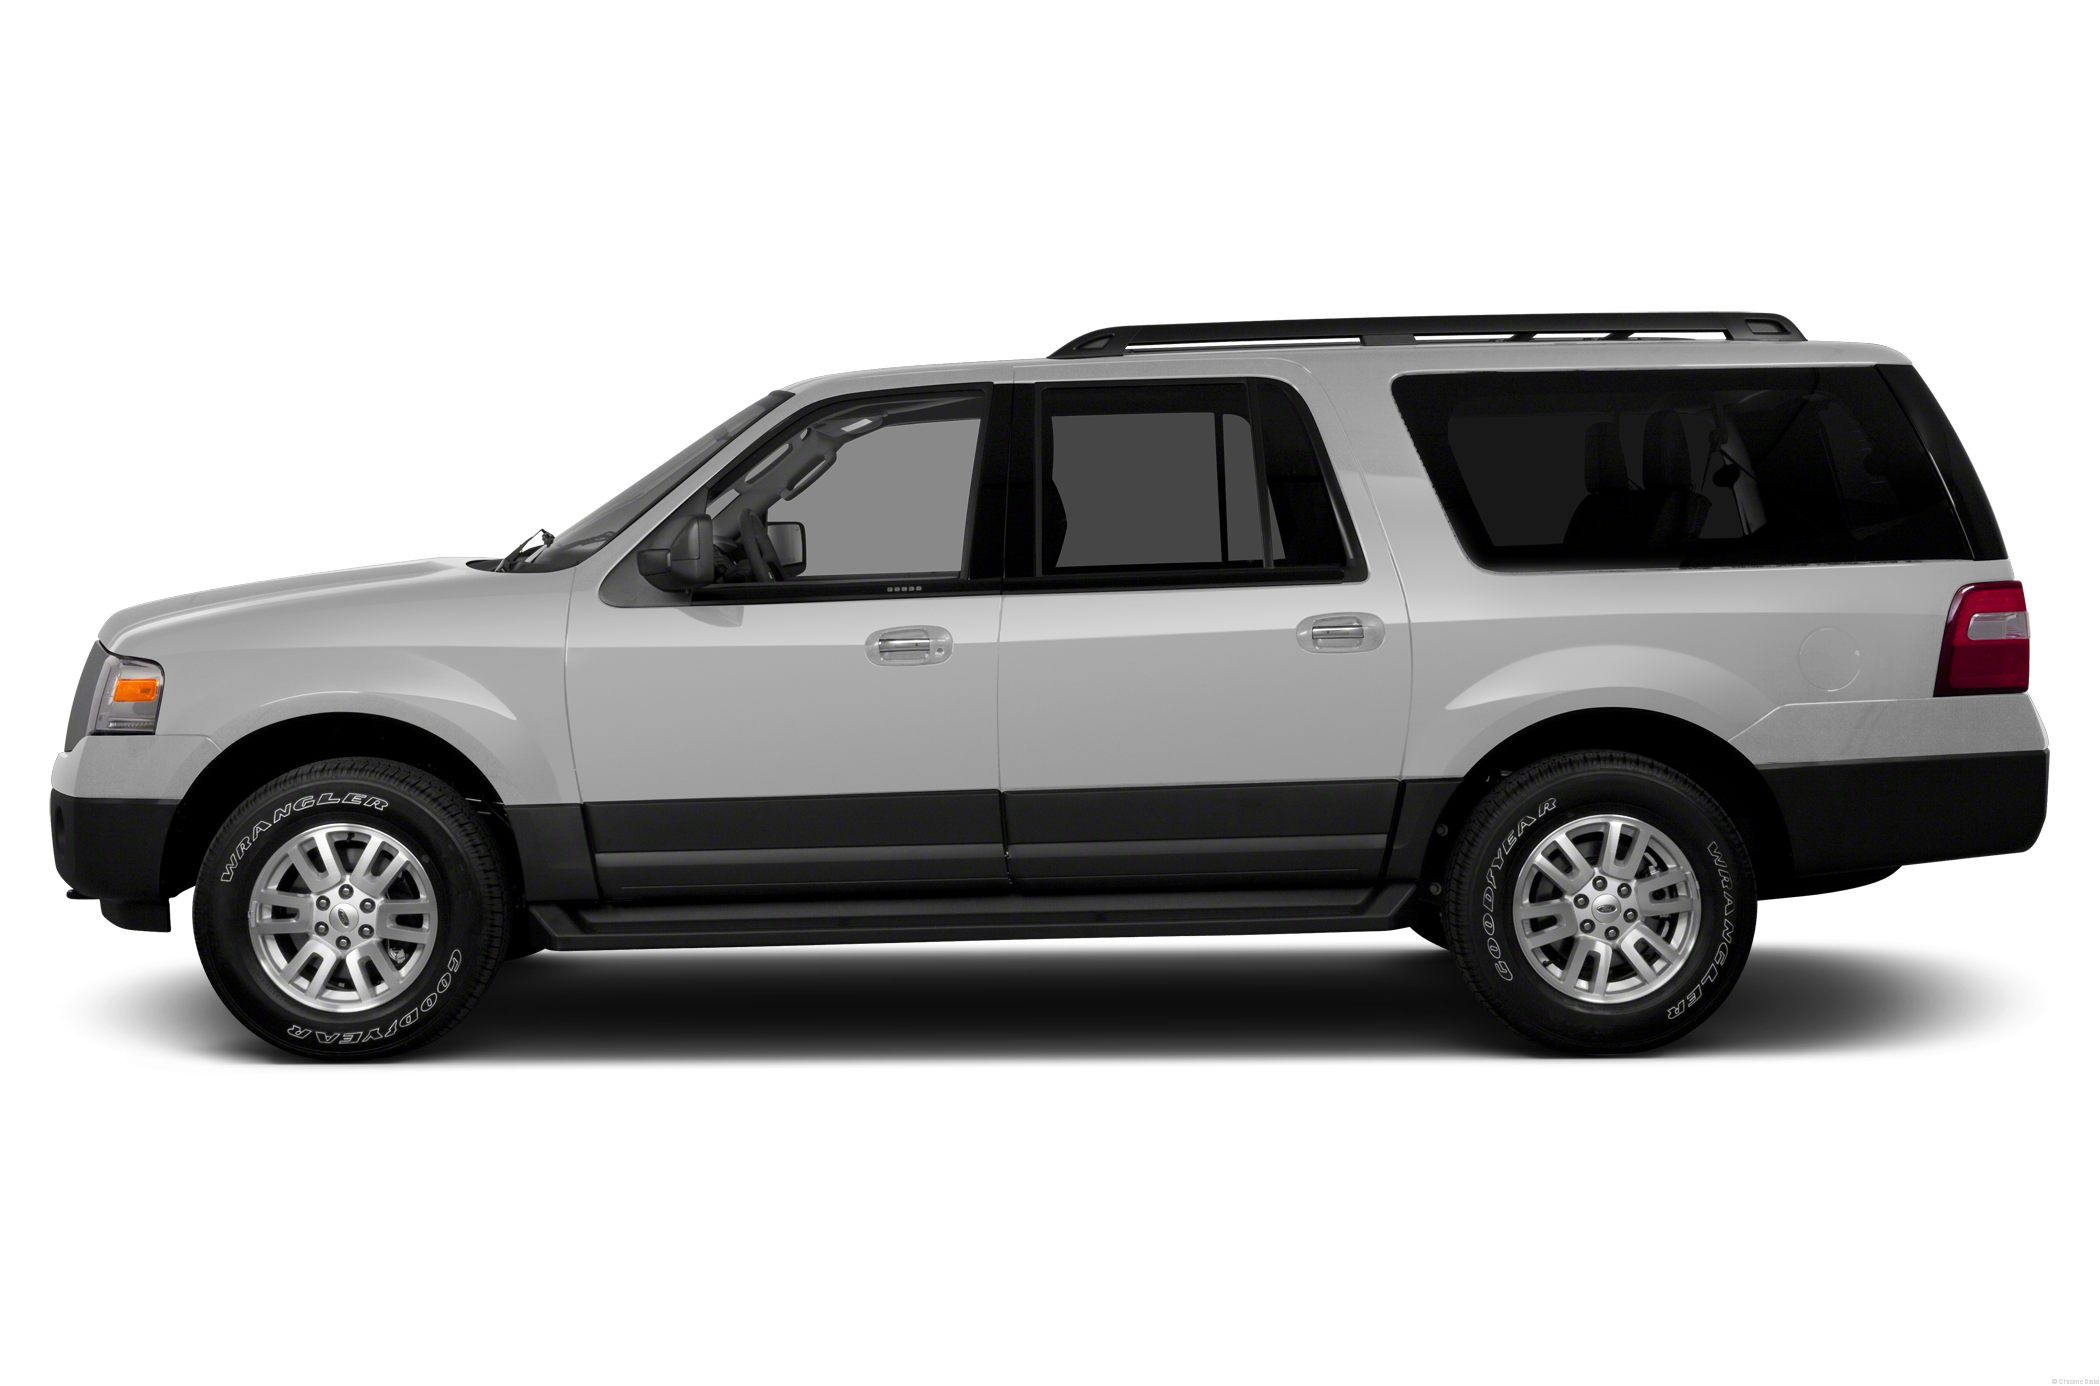 Ford Expedition 2014 photo - 4